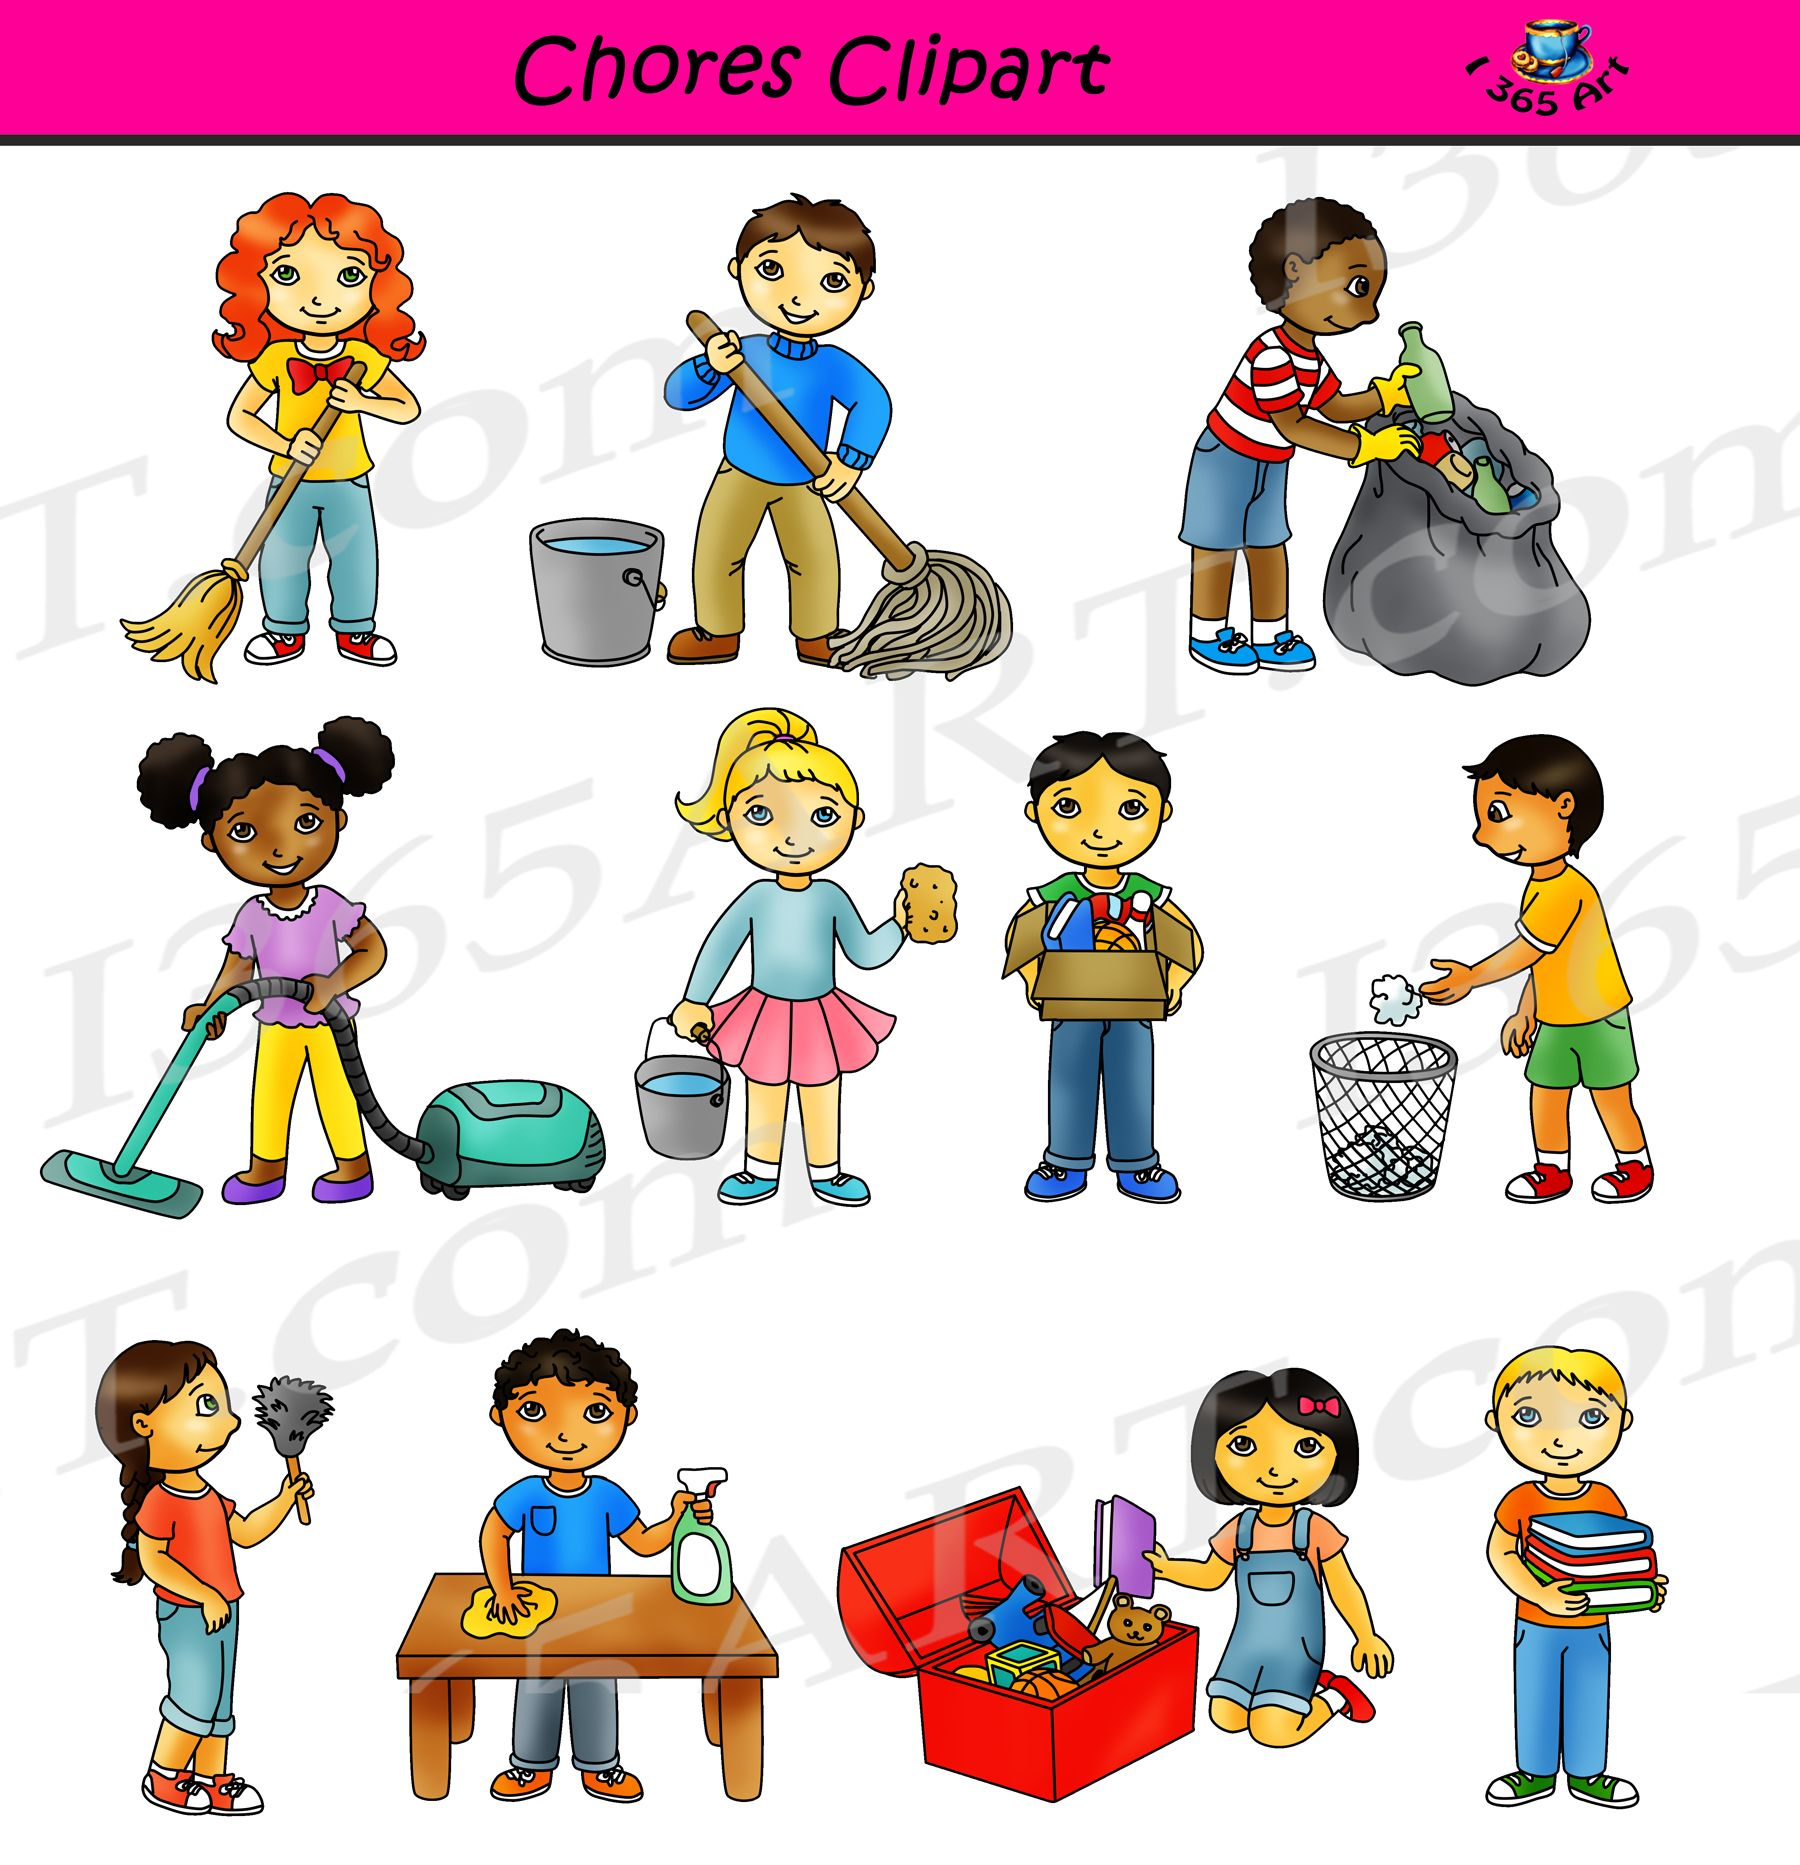 """clipart 4 school on twitter: """"#chores #clipart – #classroom"""